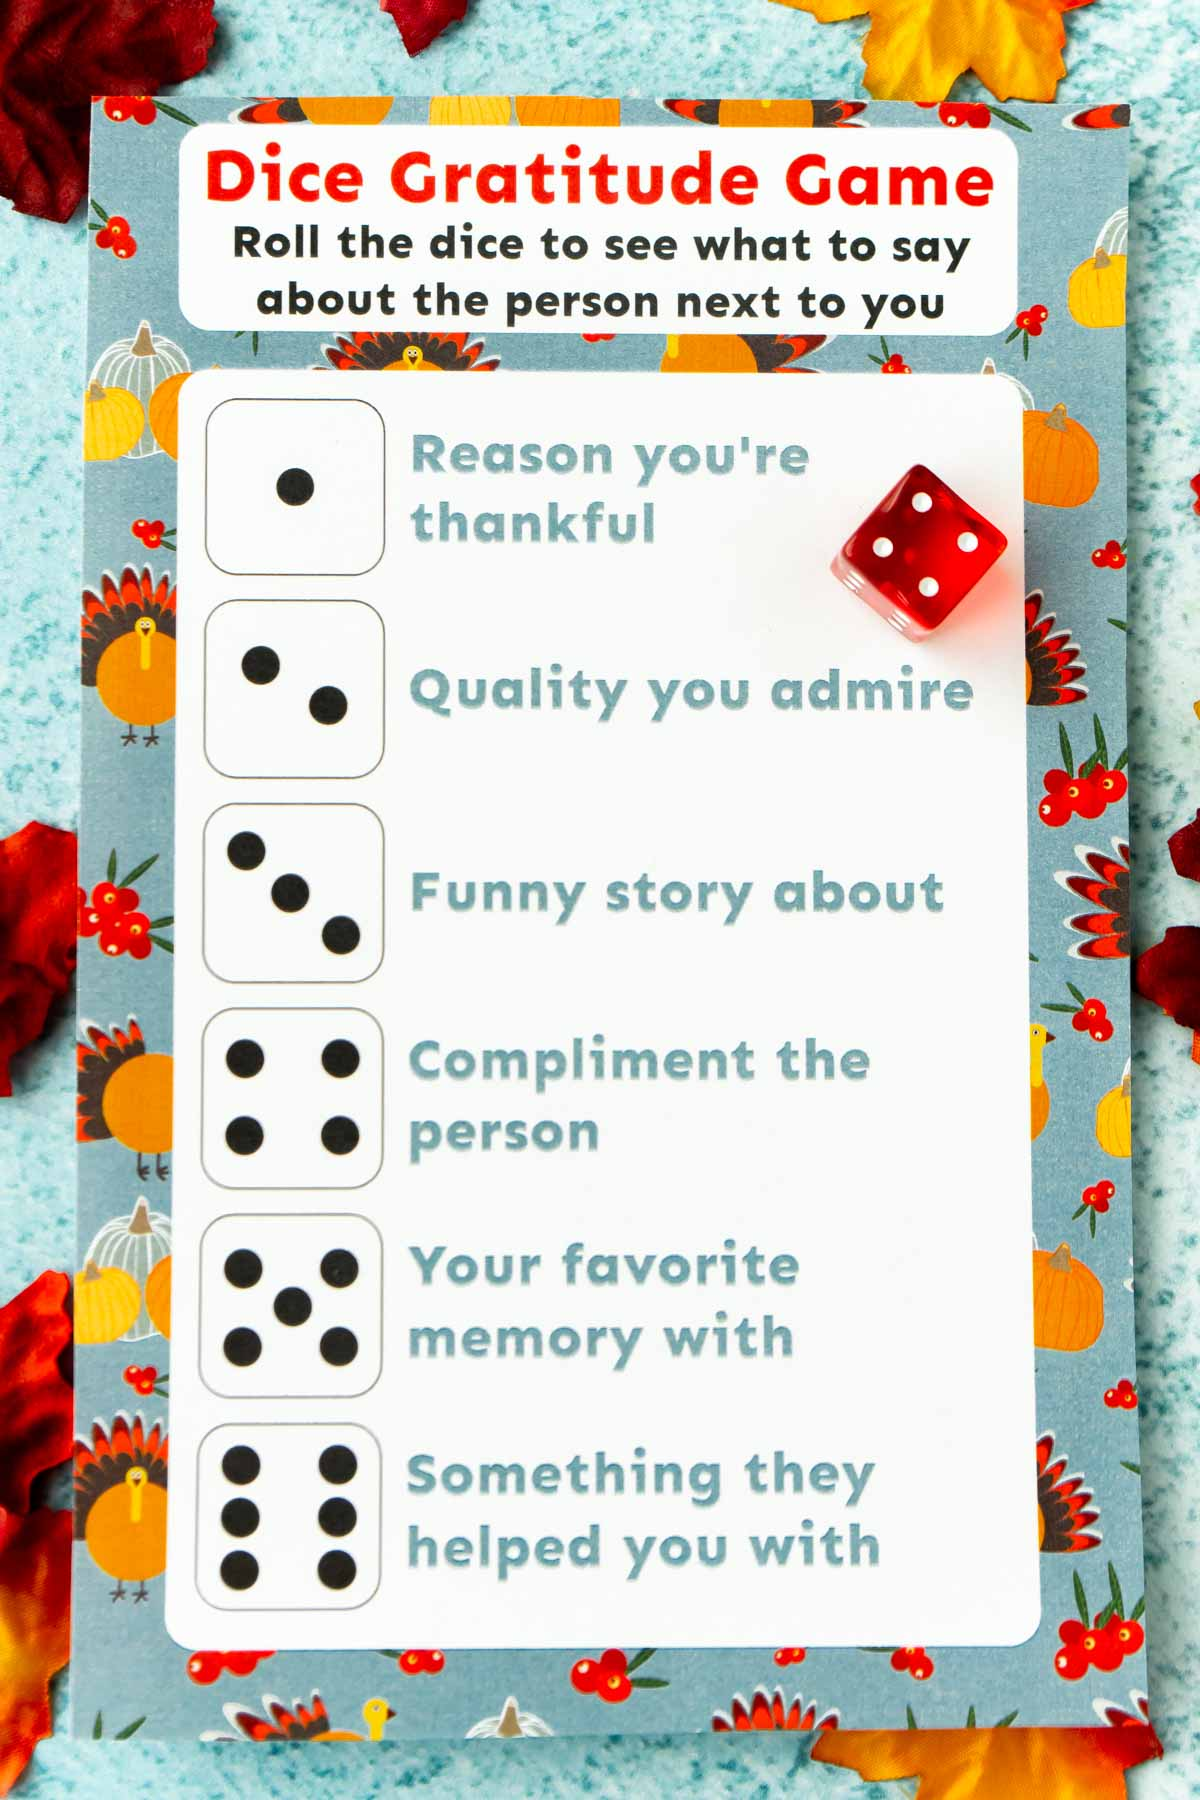 Printed out Thanksgiving dinner game with a dice and leaves around it